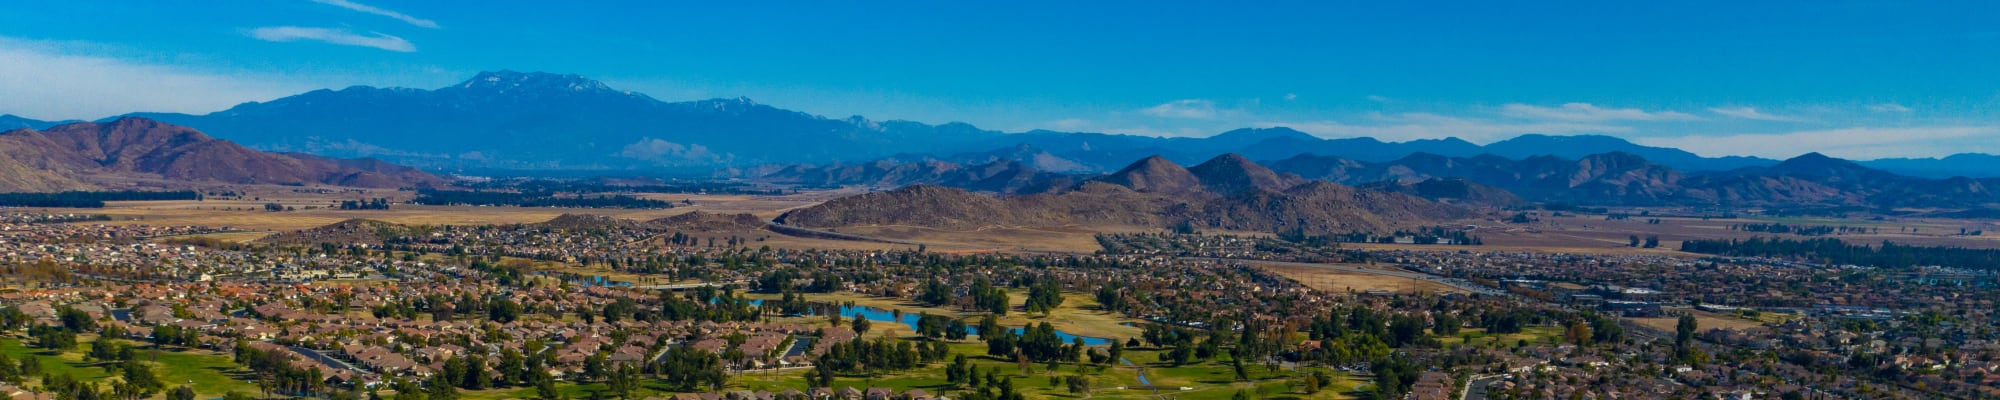 Contact WellQuest of Menifee Lakes in Menifee, California